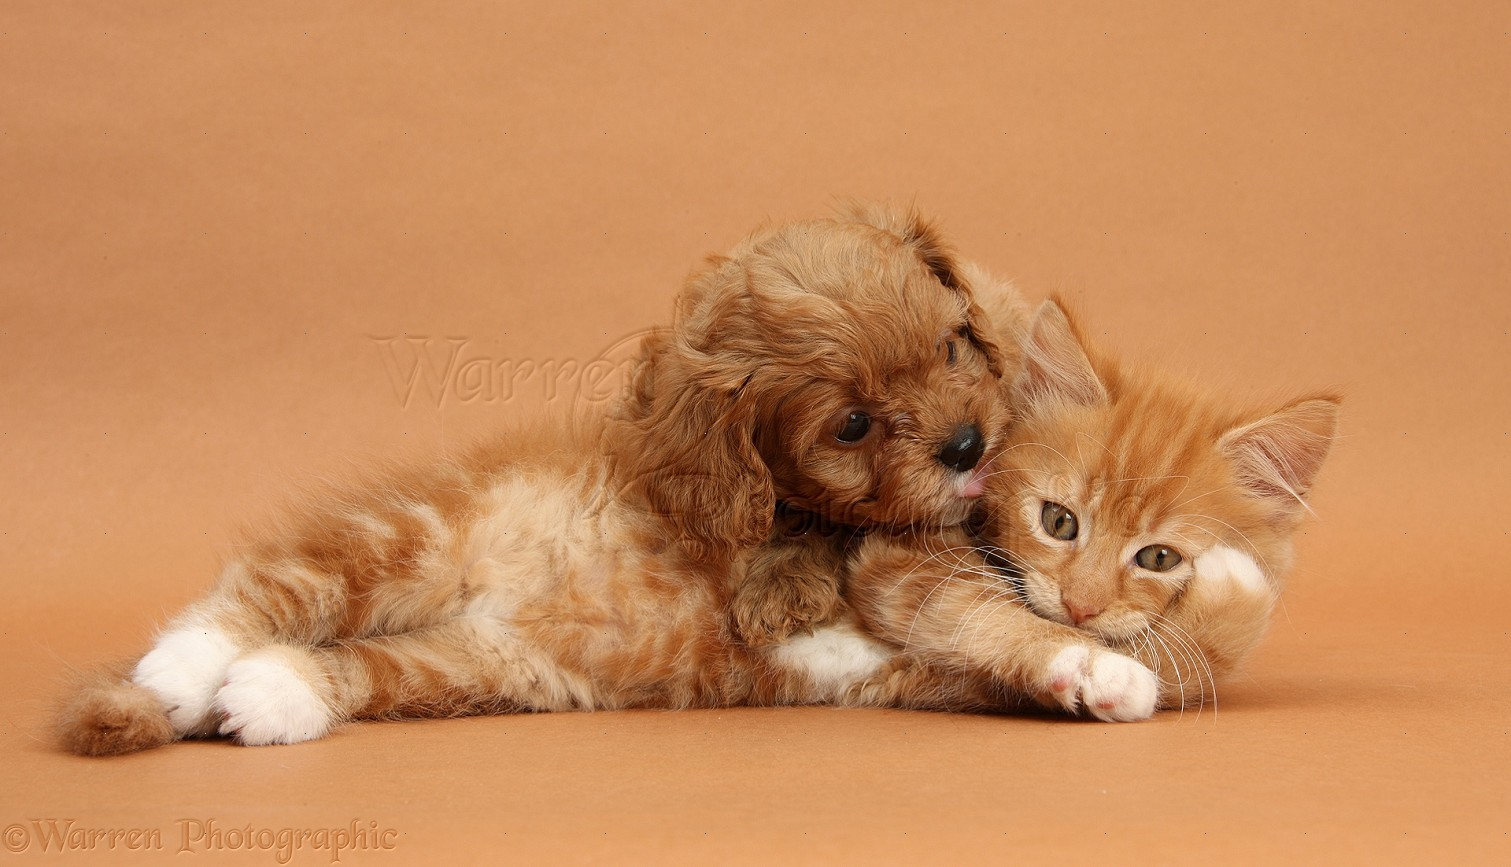 images of puppies and kittens together